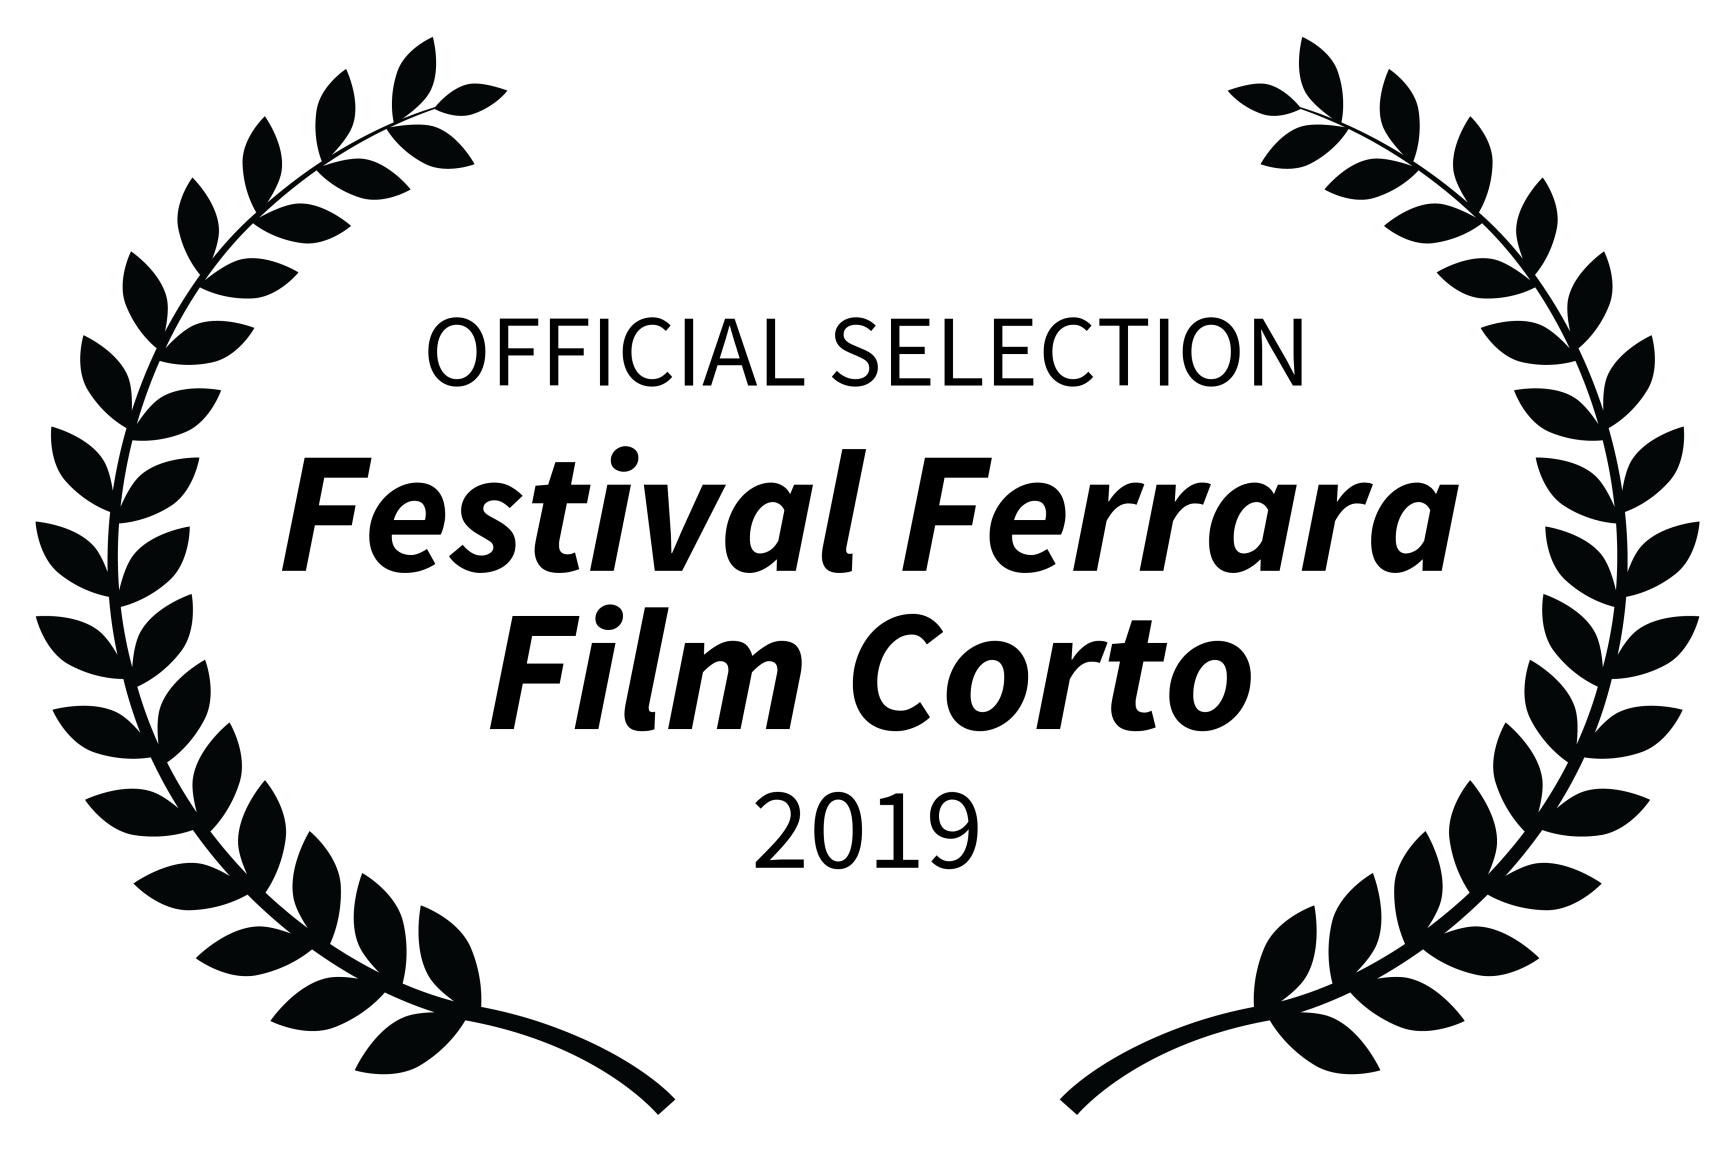 OFFICIAL SELECTION - Festival Ferrara Film Corto - 2019